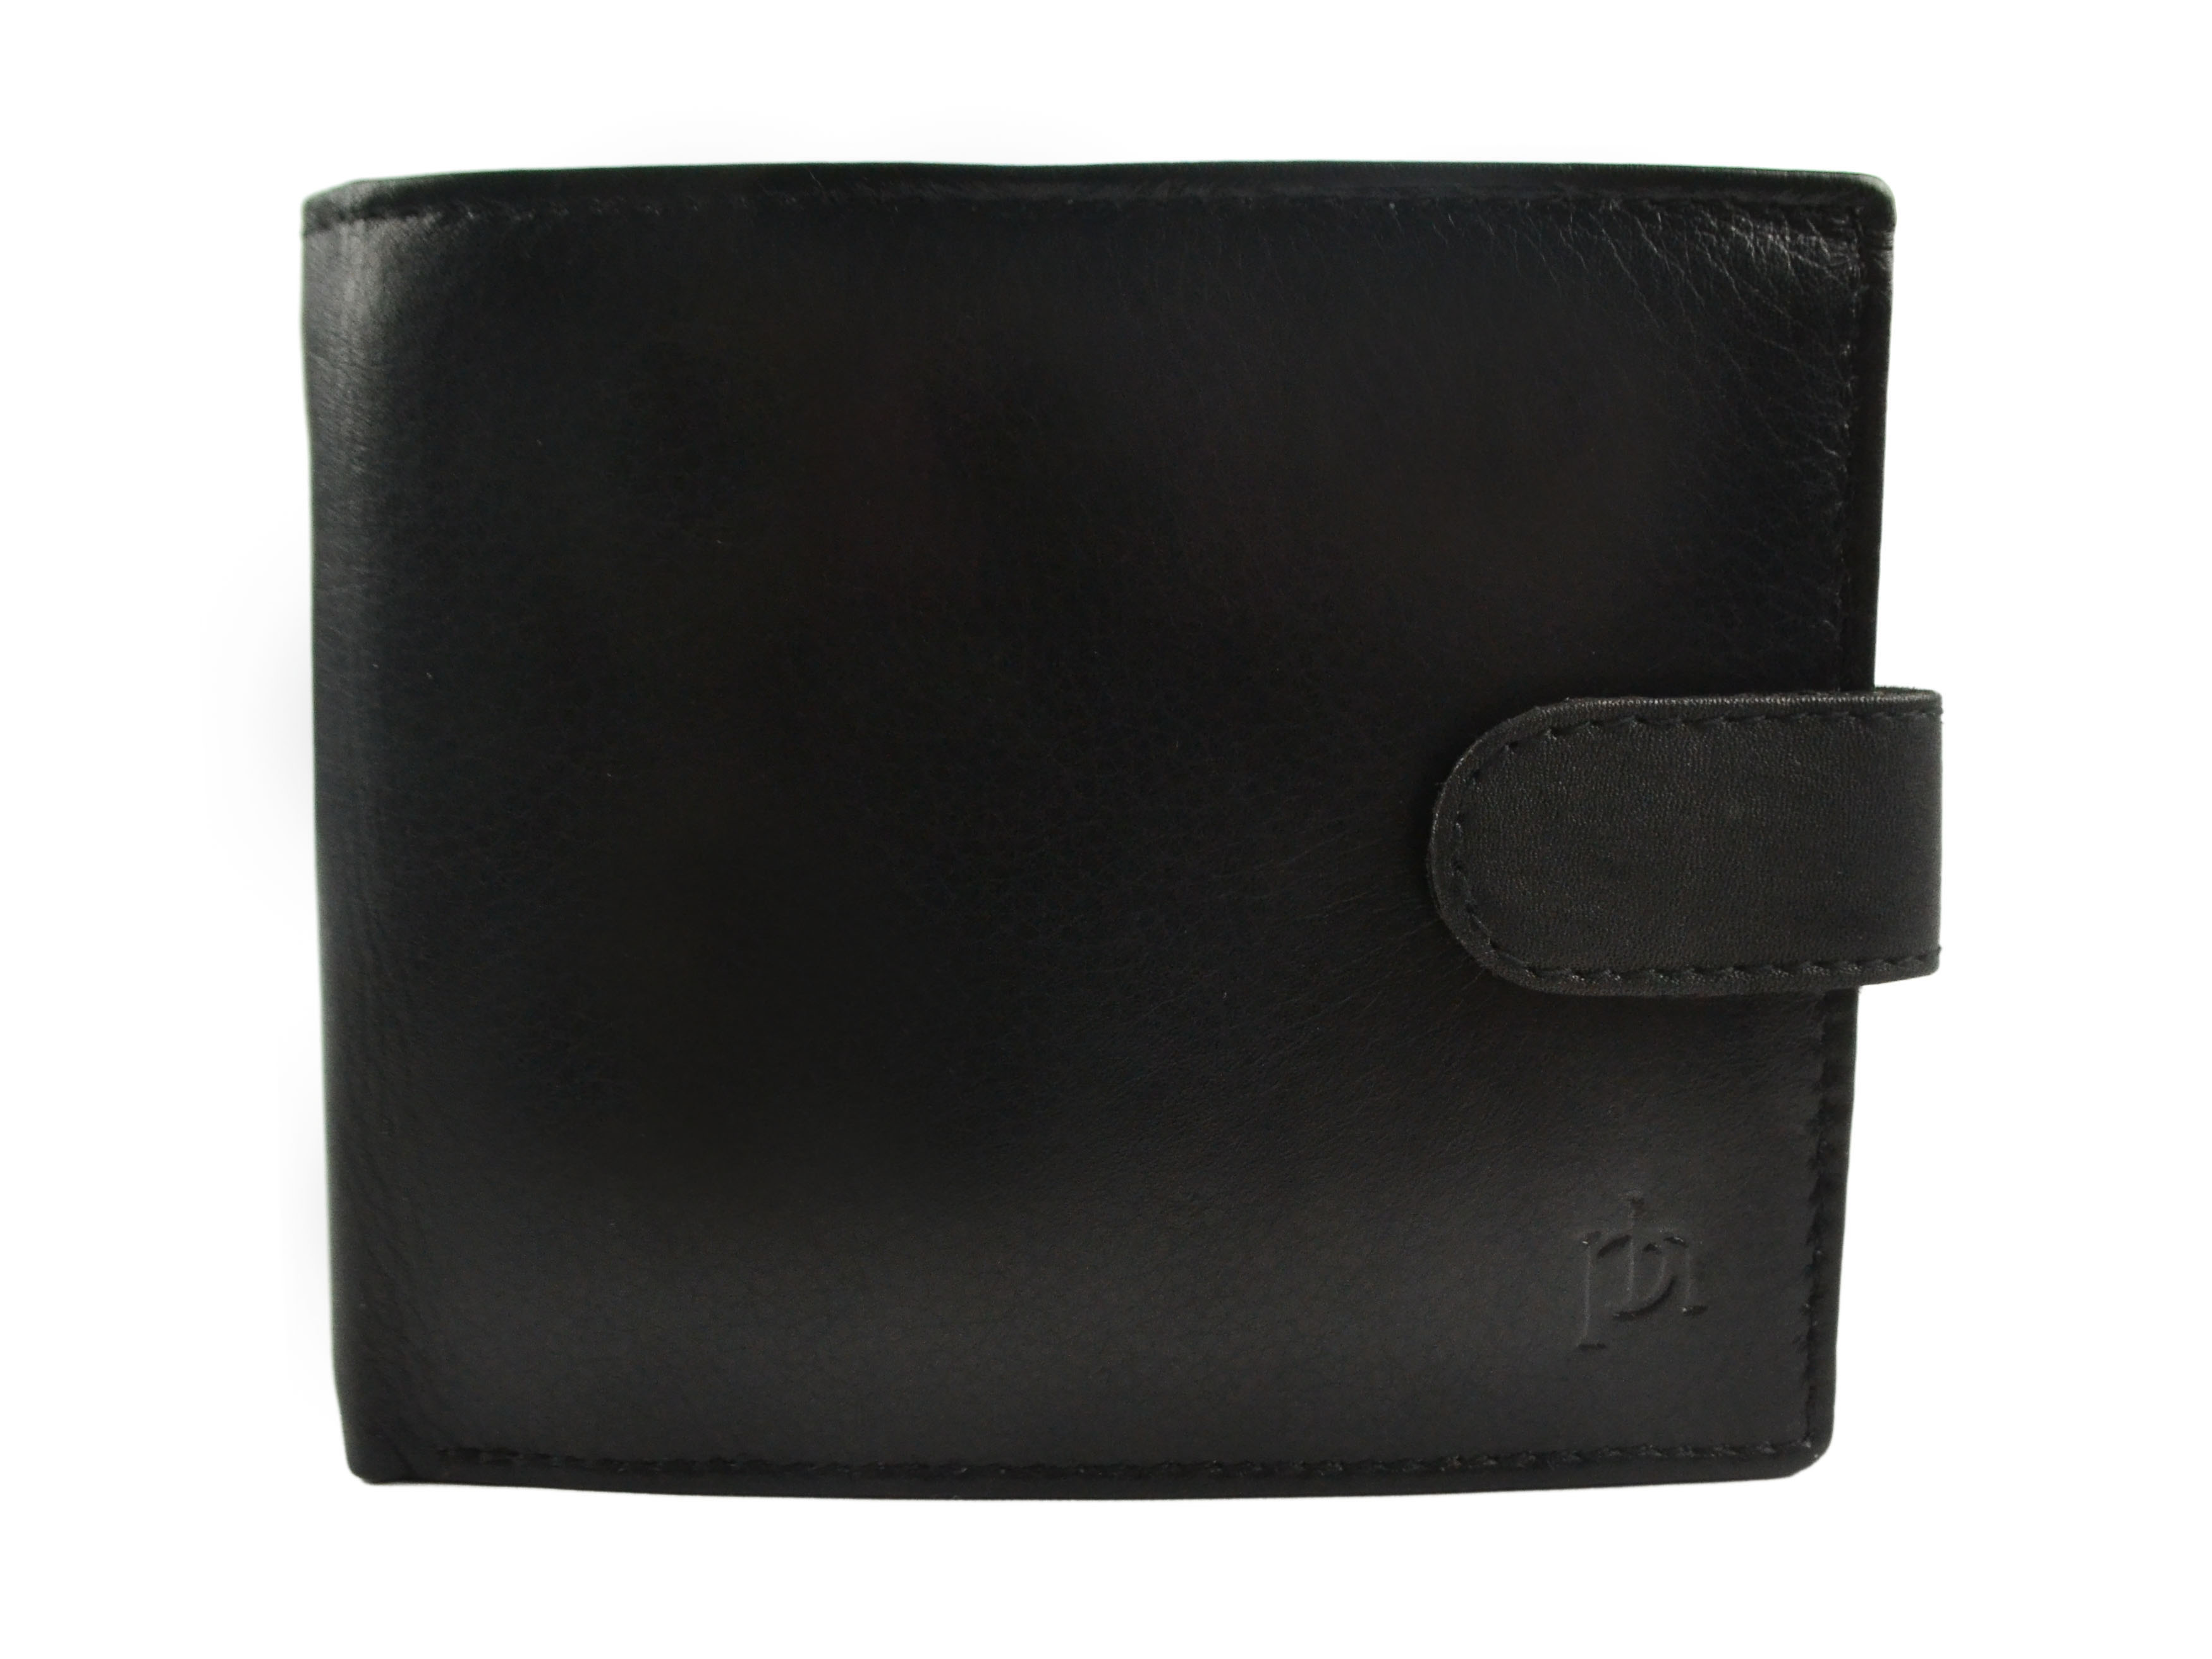 Mens-Quality-Leather-Wallet-by-Prime-Hide-Gift-Boxed-Stylish-with-Coin-Pocket thumbnail 3